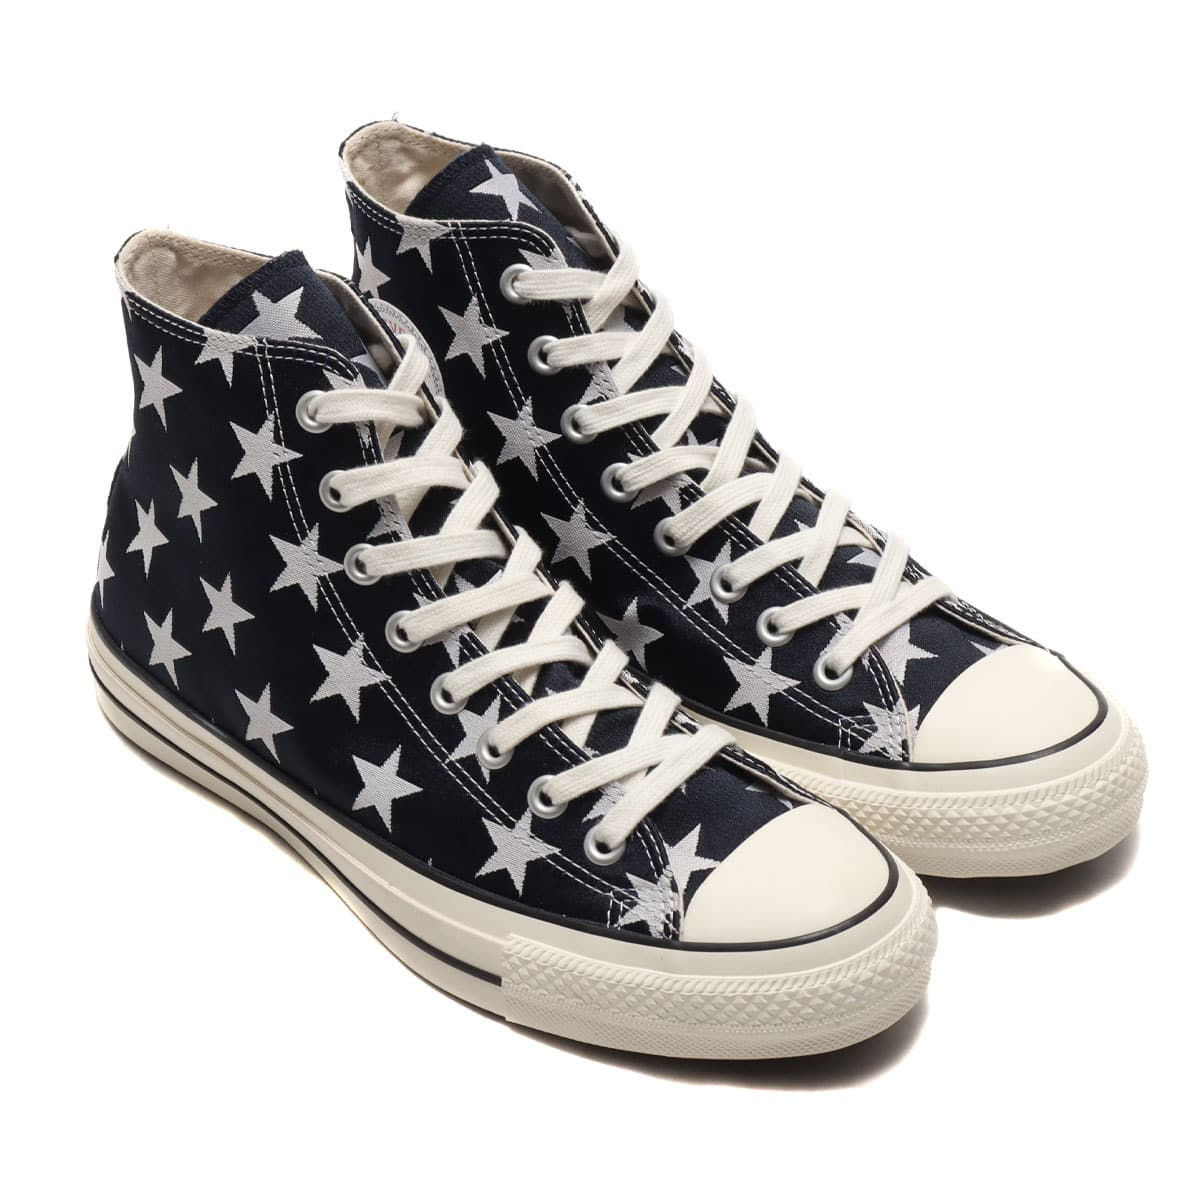 CONVERSE ALL STAR 100 NISHIJIN-ORI ST HI ネイビー 20FW-I_photo_large